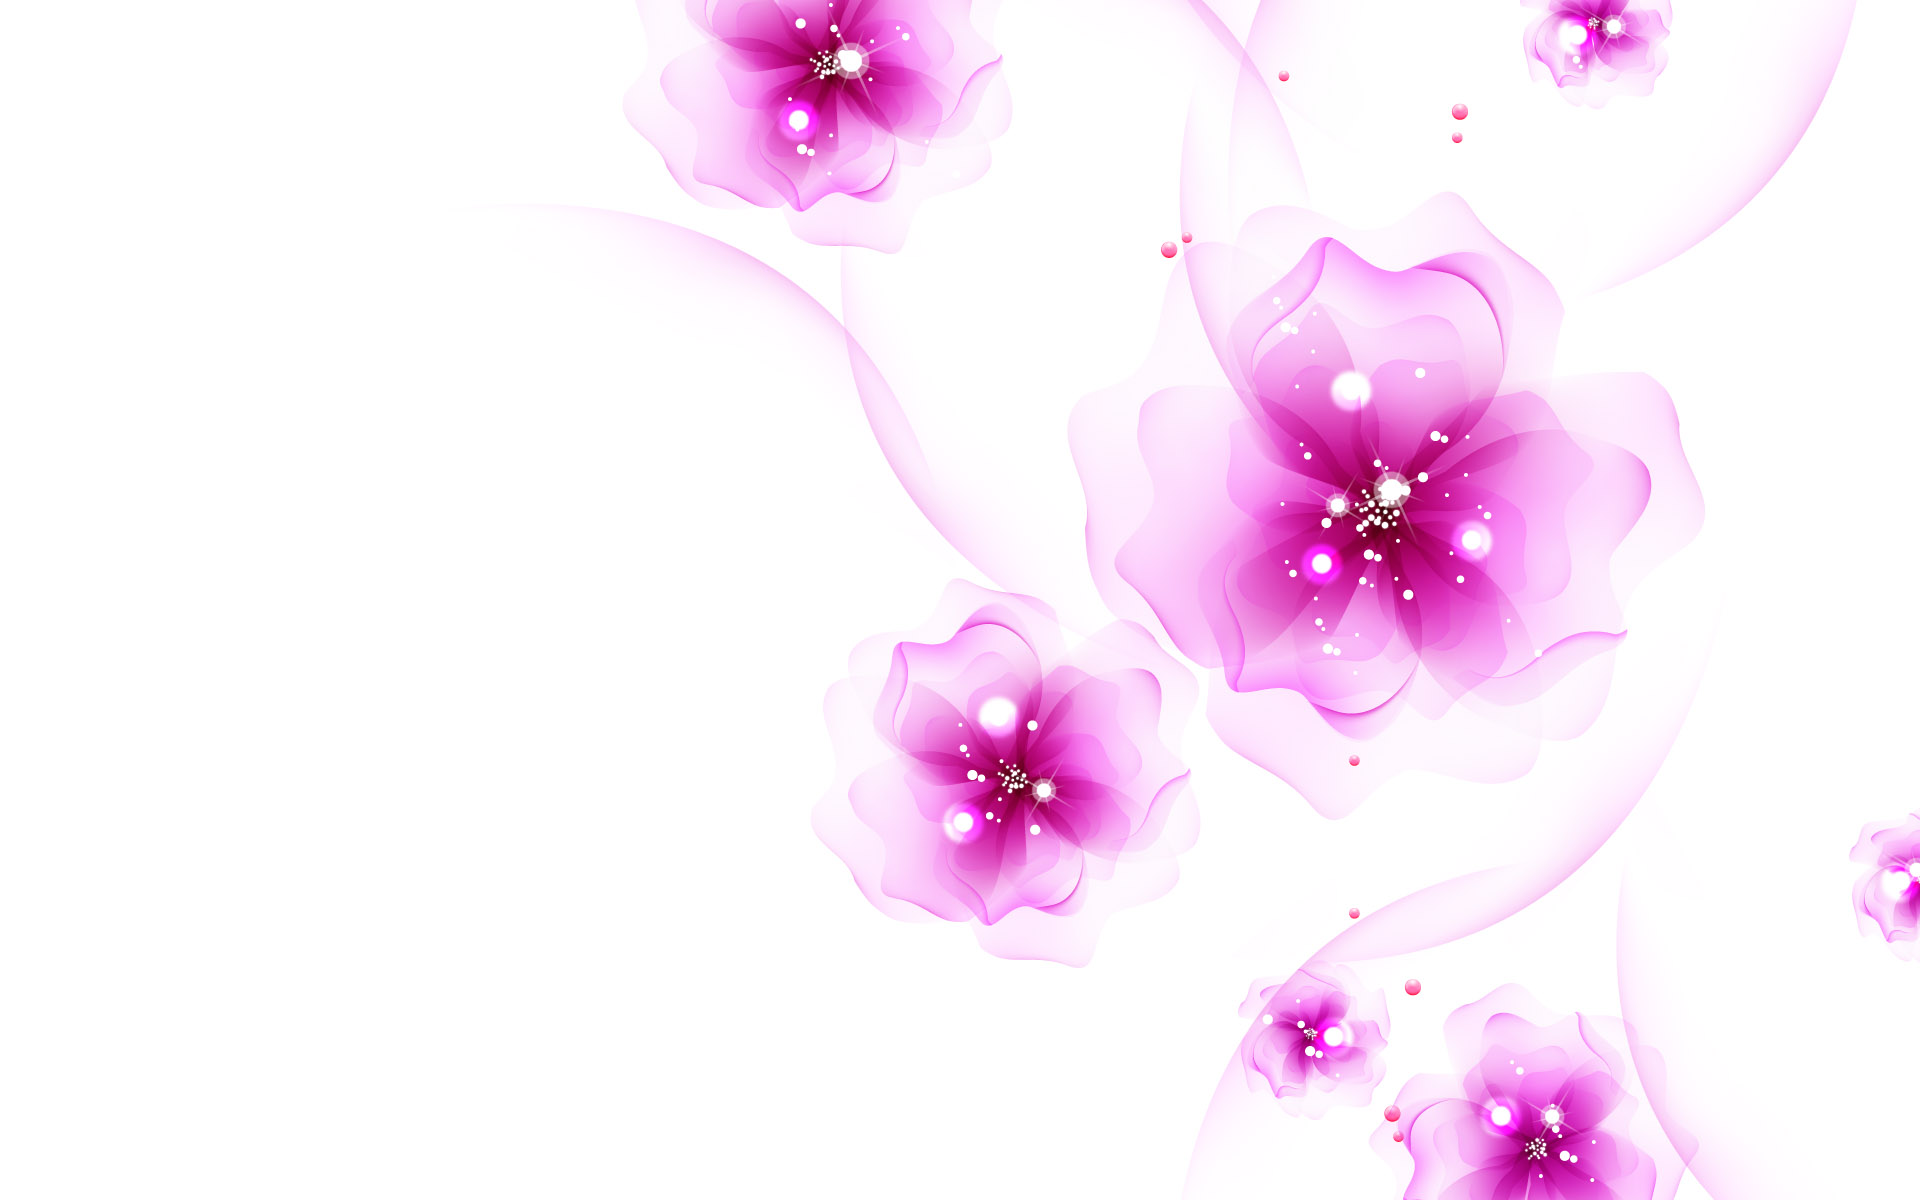 Background color 17785